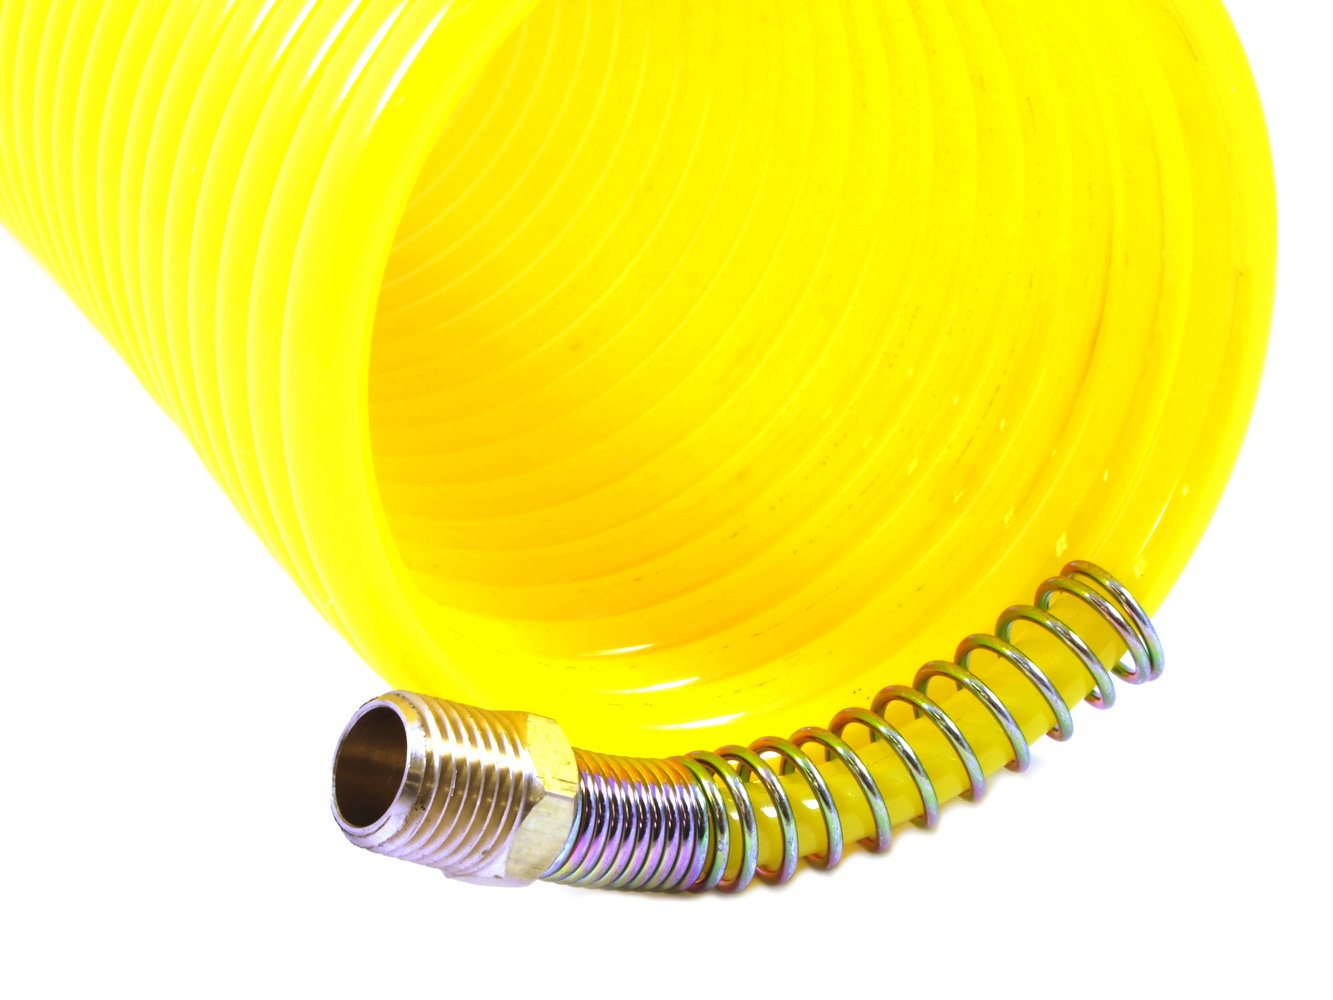 Forney 75418 Recoil Air Hose 1//4-Inch-by-25-Feet 1 Swivel End 200 PSI Forney Industries Yellow Nylon with 1//4-Inch Male NPT Fittings